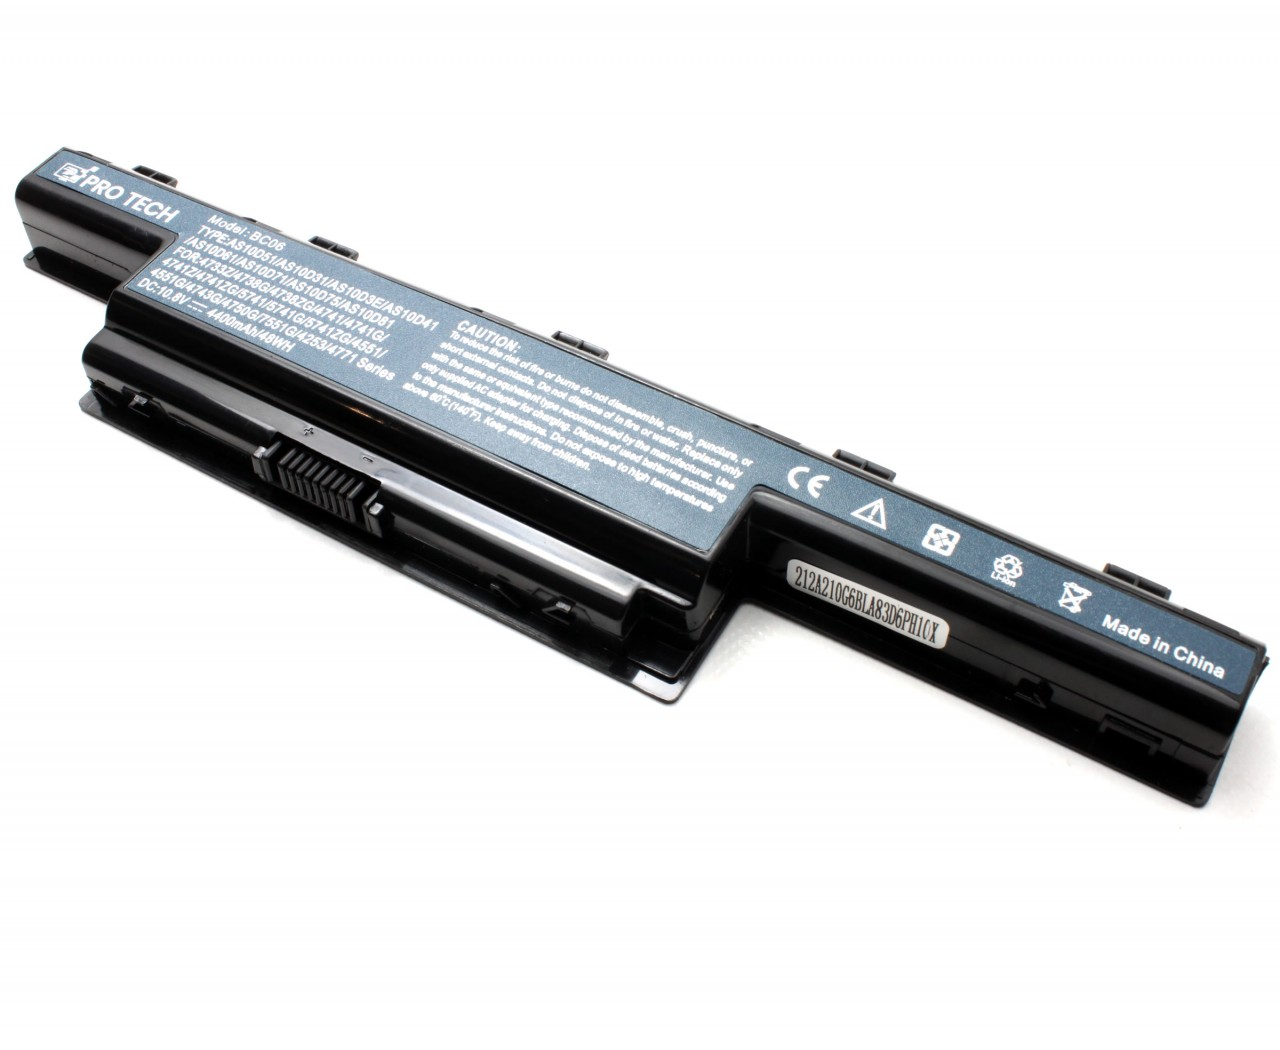 Baterie Packard Bell EasyNote TM80 9 celule imagine powerlaptop.ro 2021